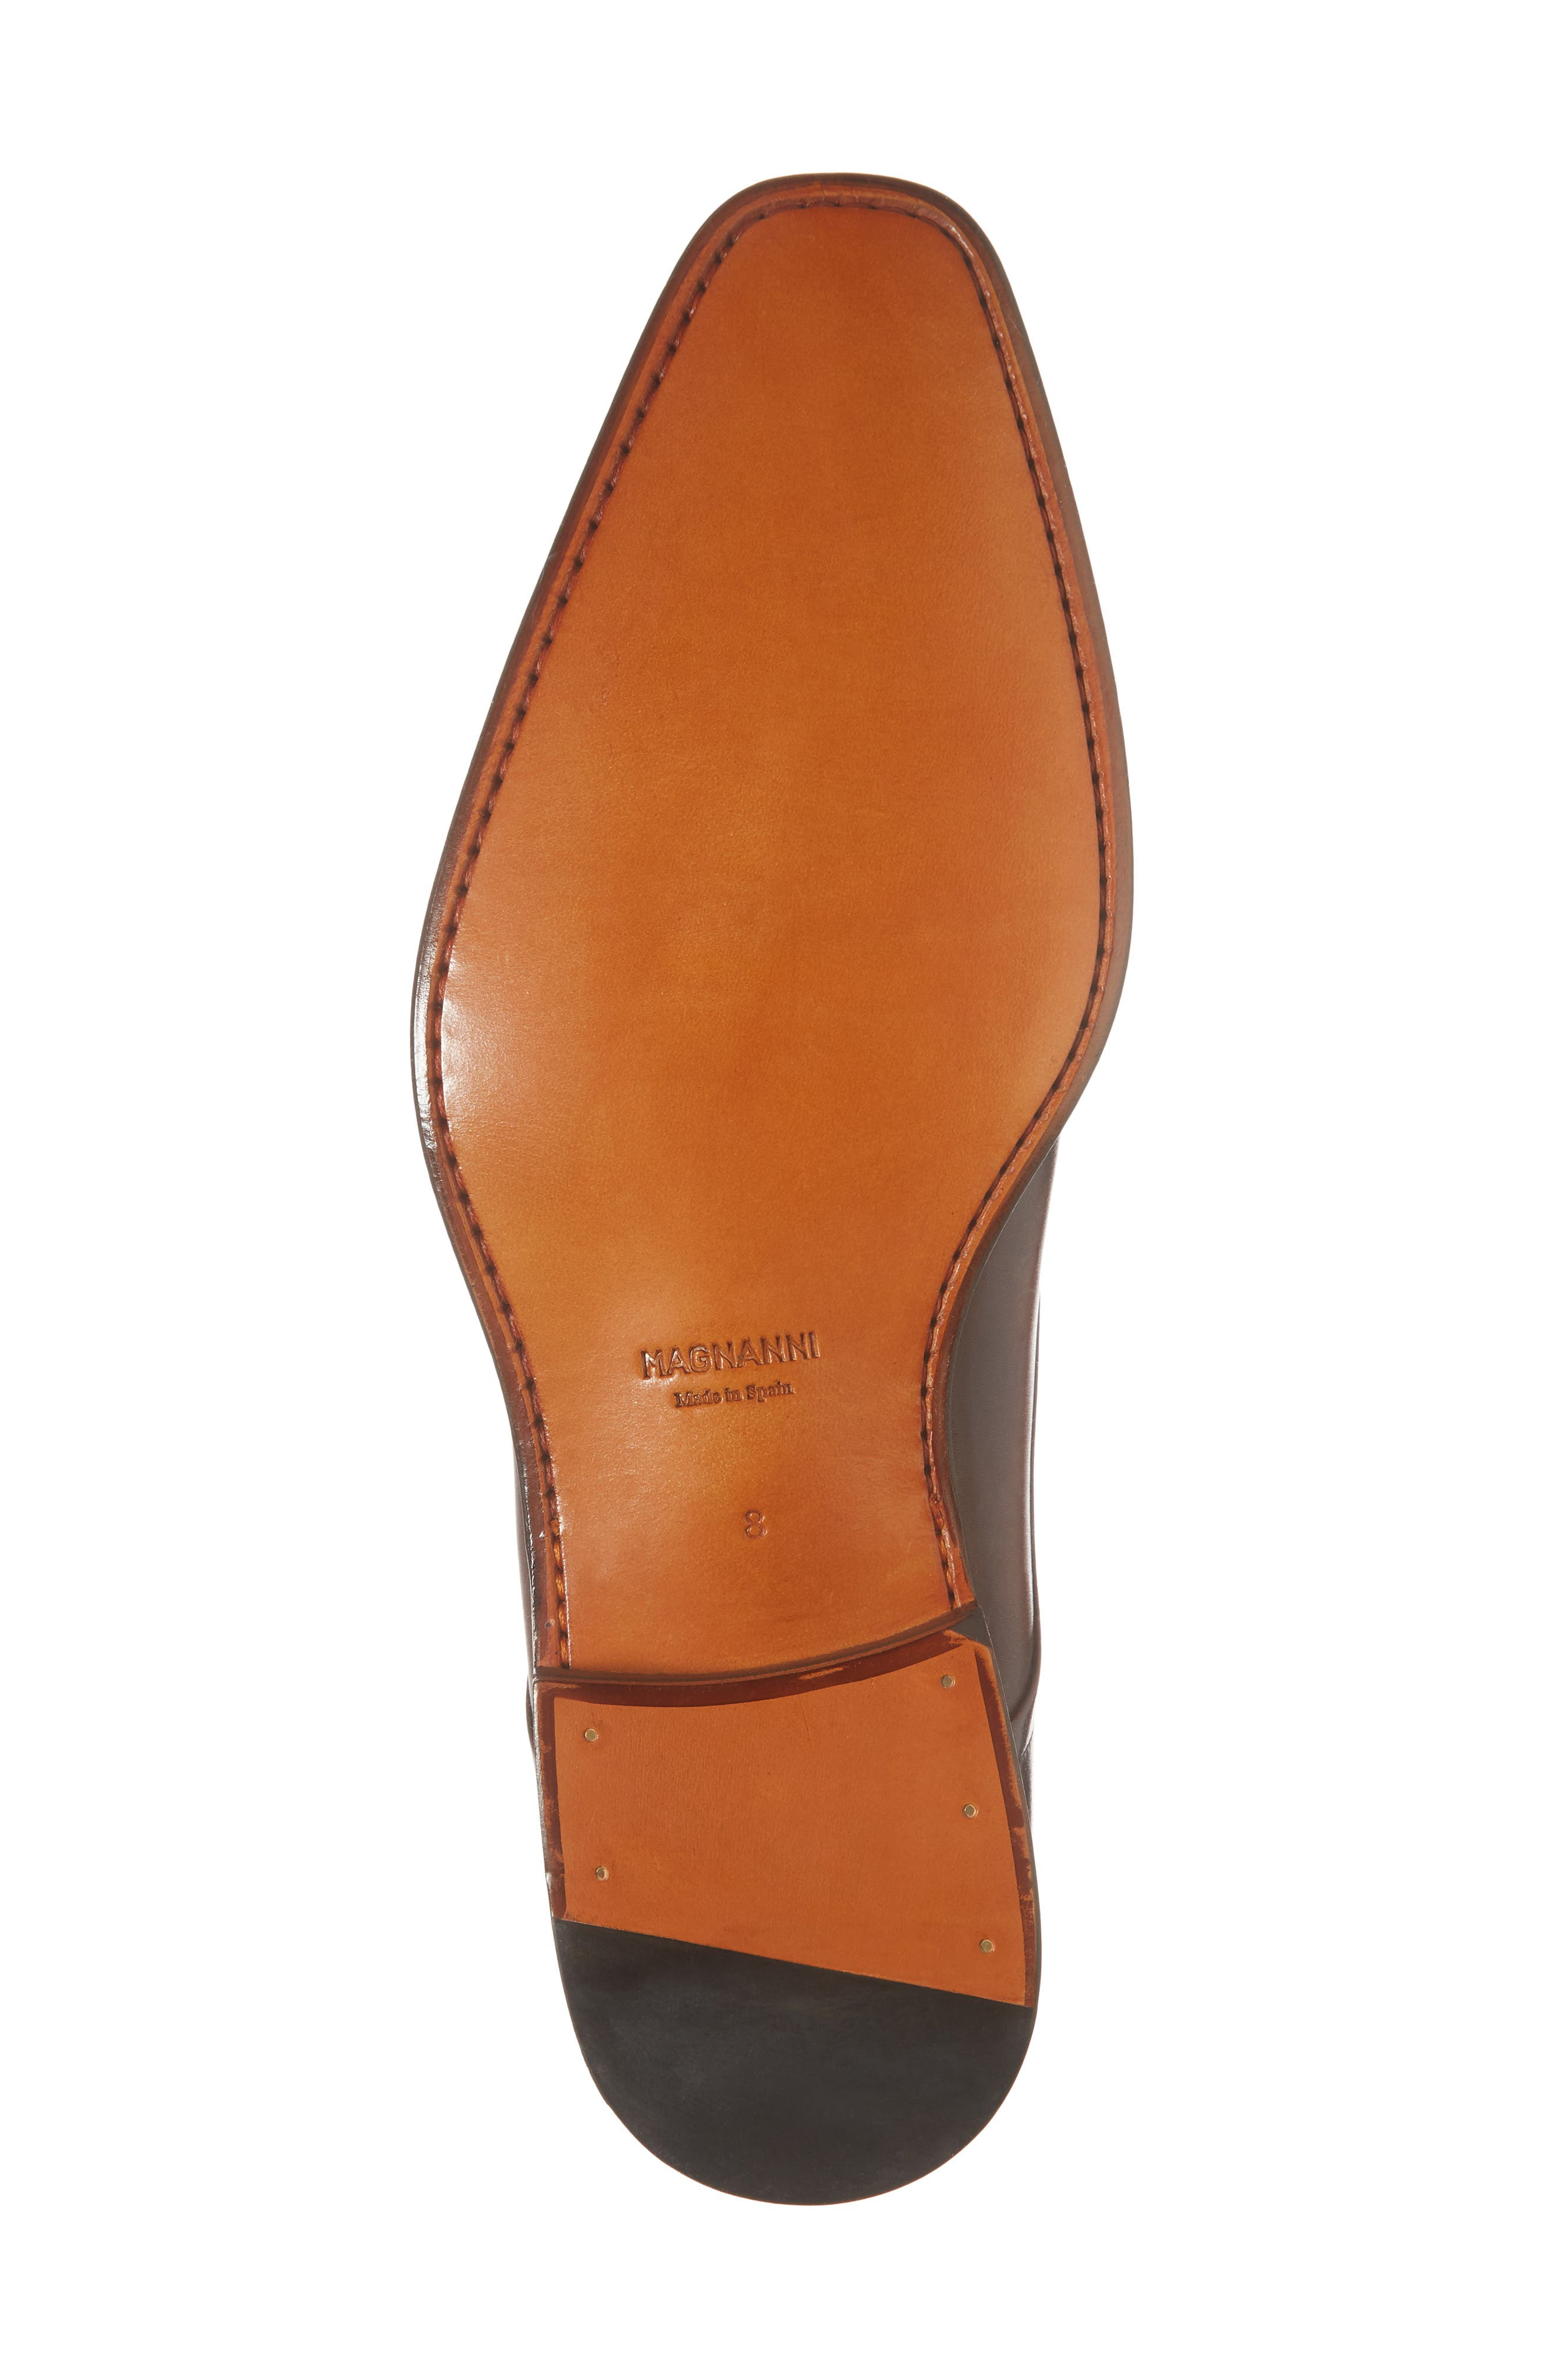 Silvio Double Monk Strap Shoe,                             Alternate thumbnail 6, color,                             230